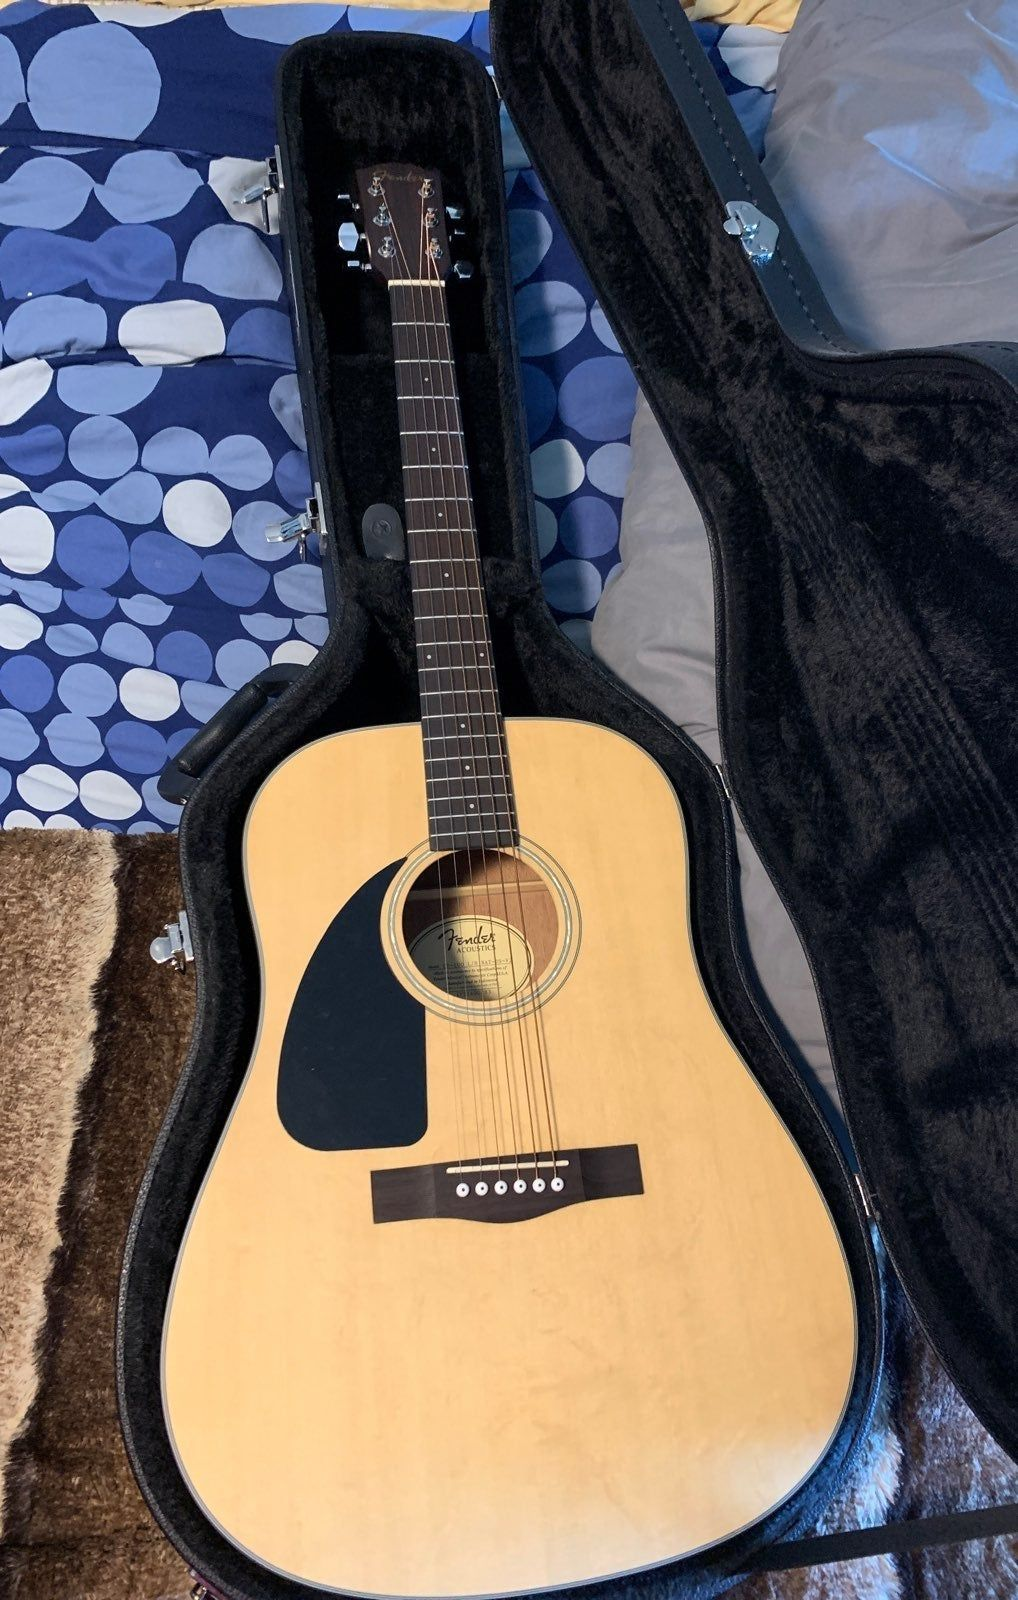 Fender Left Handed Acoustic Guitar Rarely Used With Hard Case Comes With Unused Clip On Tuner Guitar Acoustic Guitar Left Handed Acoustic Guitar